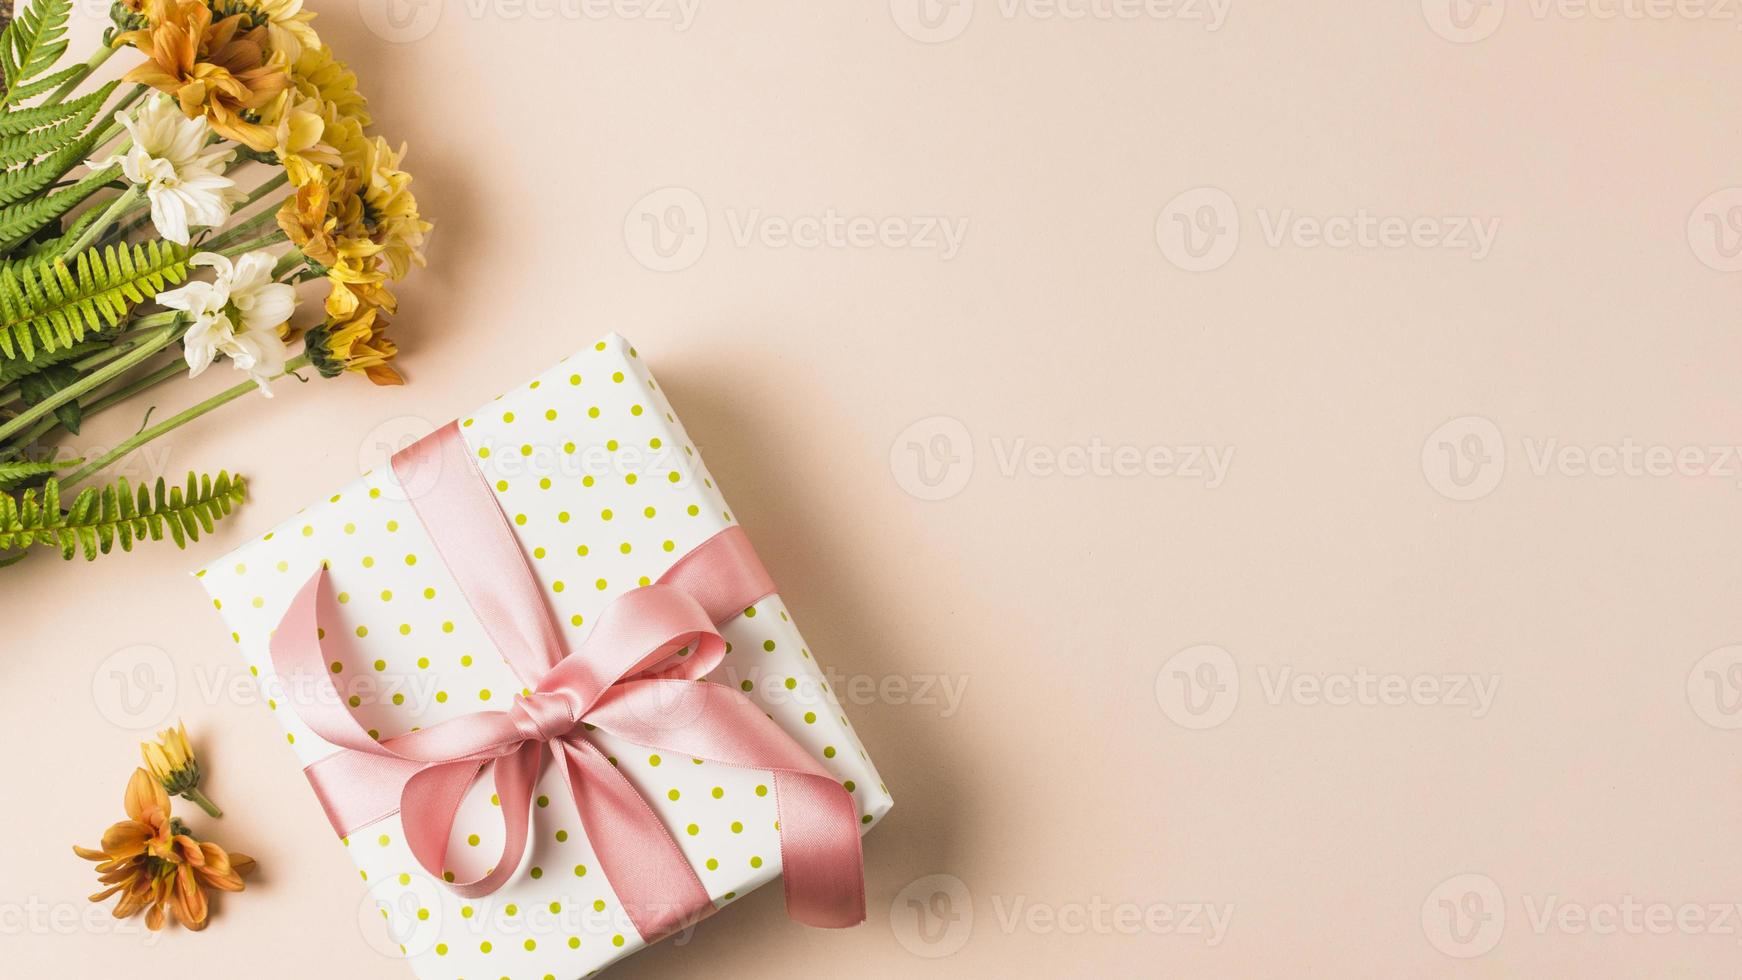 White yellow flower bouquet near wrapped present on peach surface photo